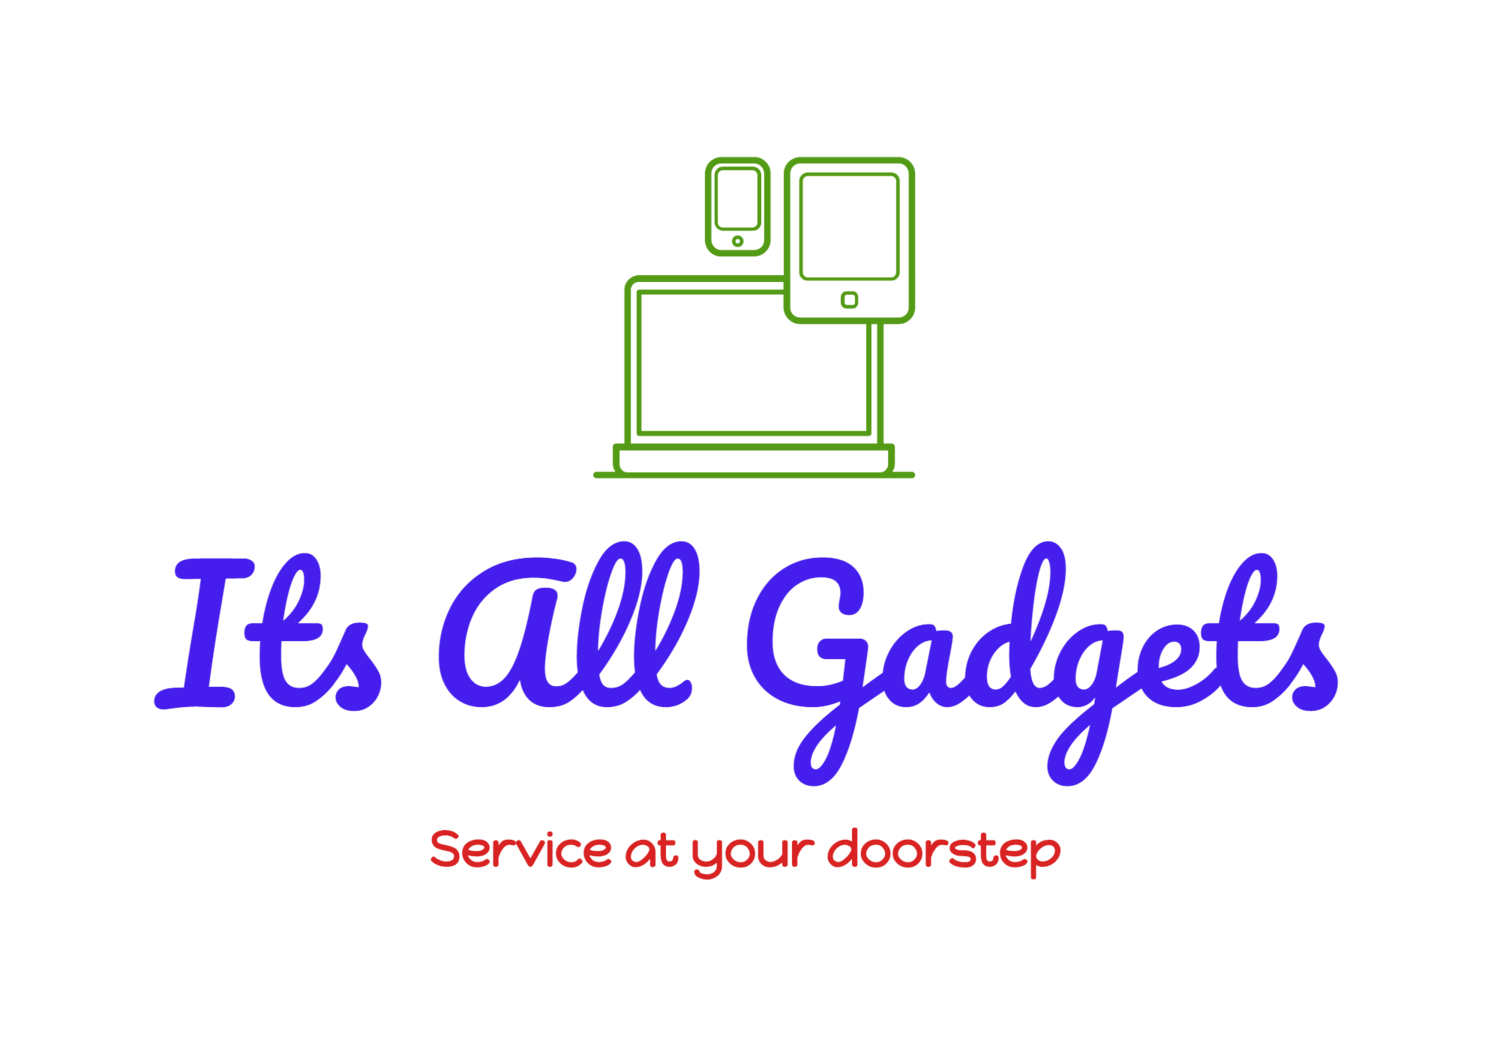 Its all Gadgets